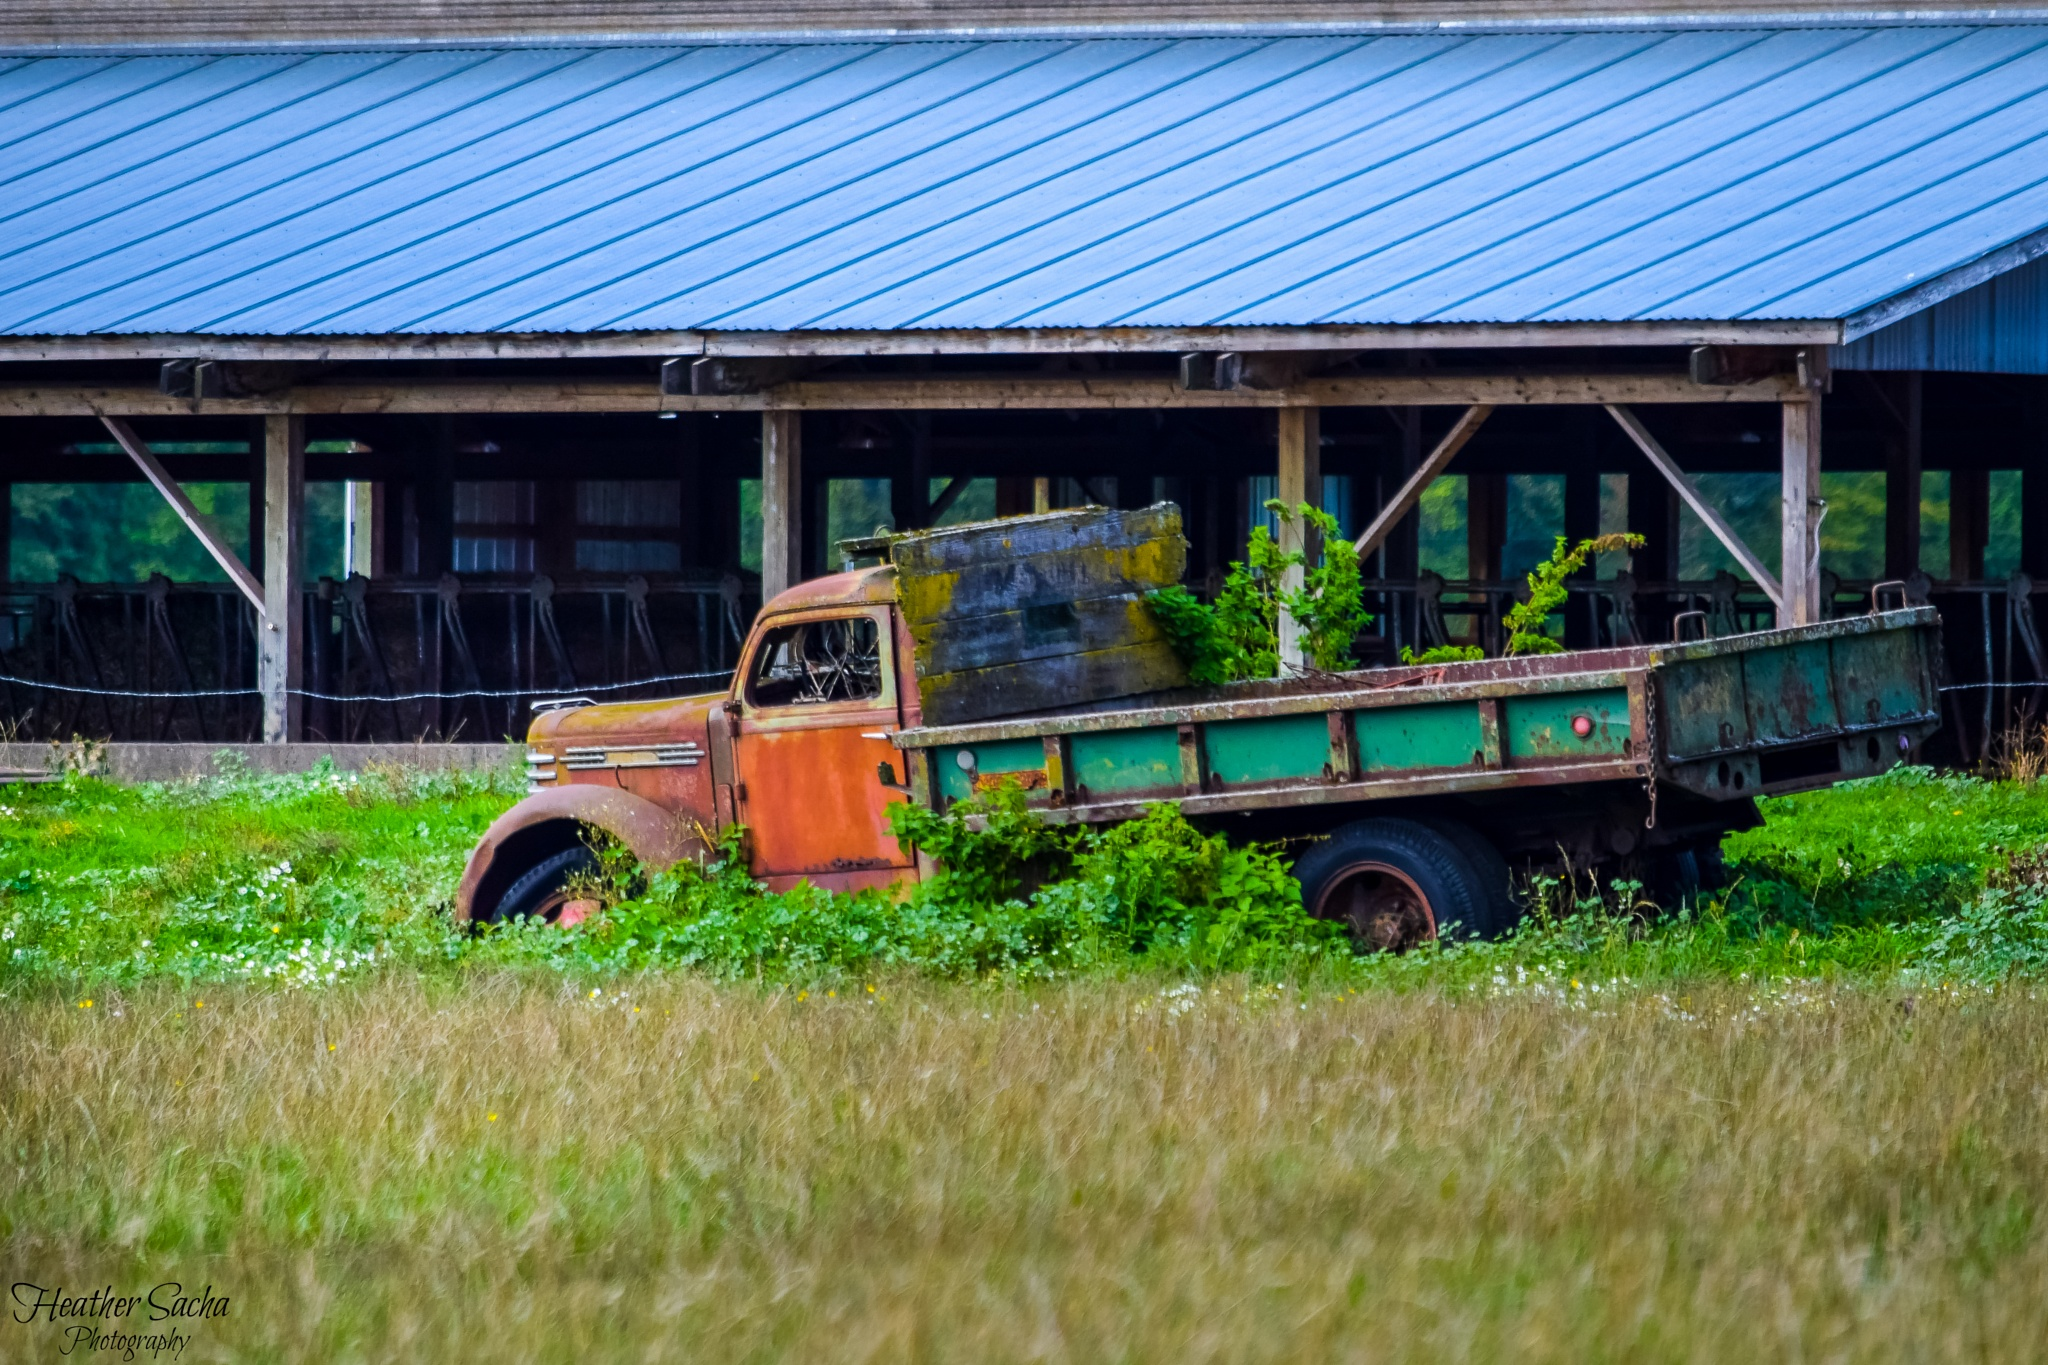 Old Truck by heather.sacha